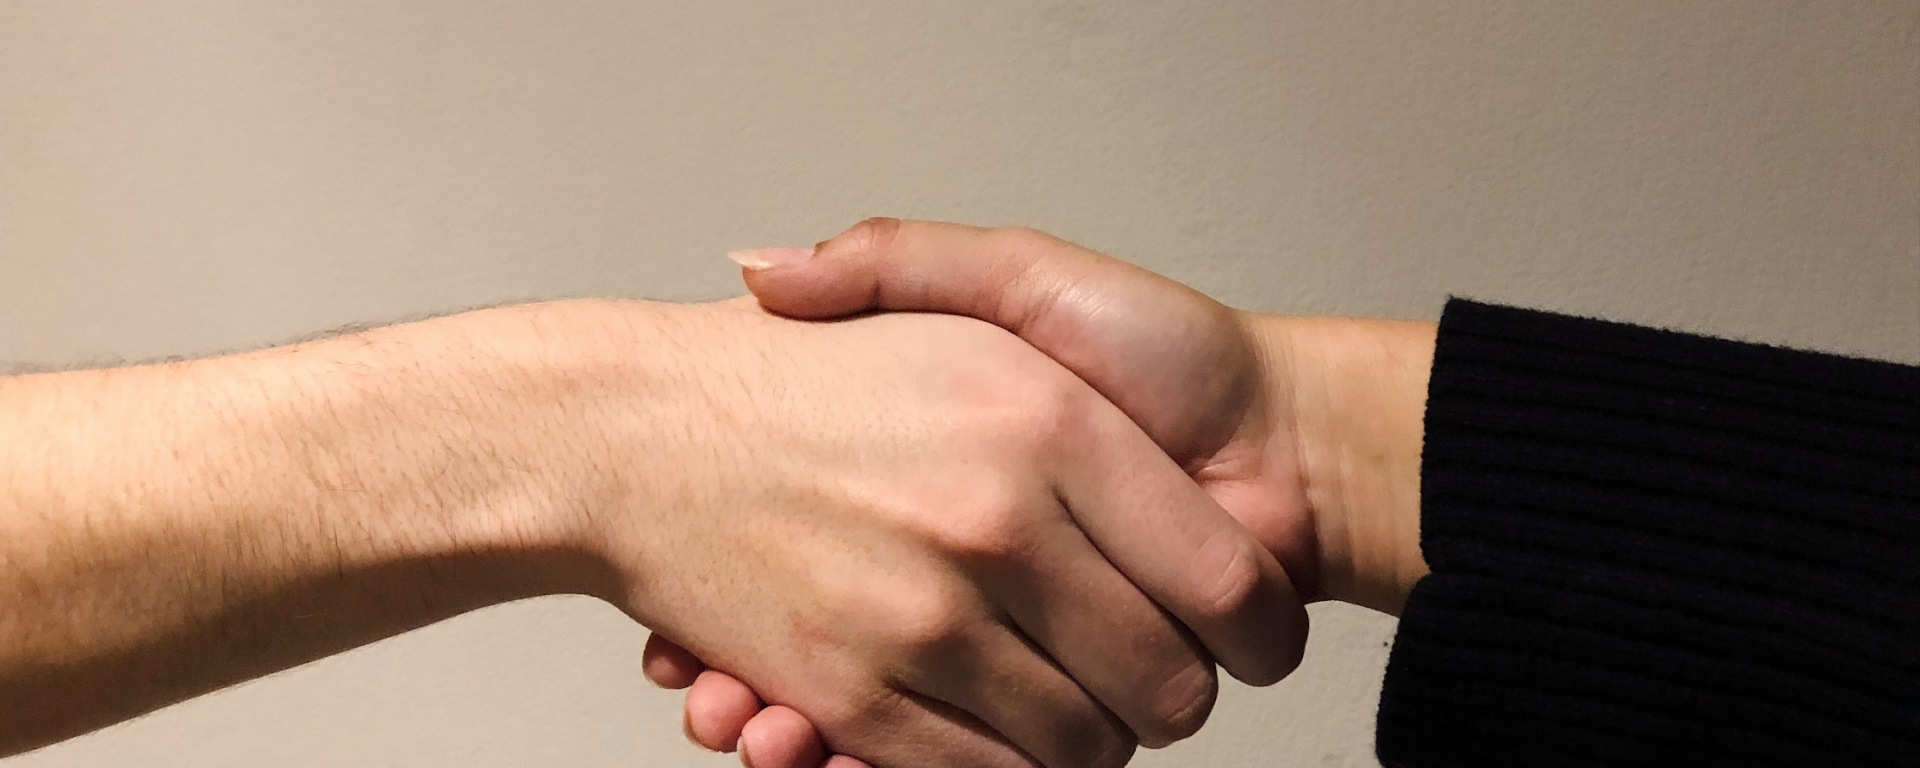 The photo features two hands in a handshake position in front of an ivory-colored wall.